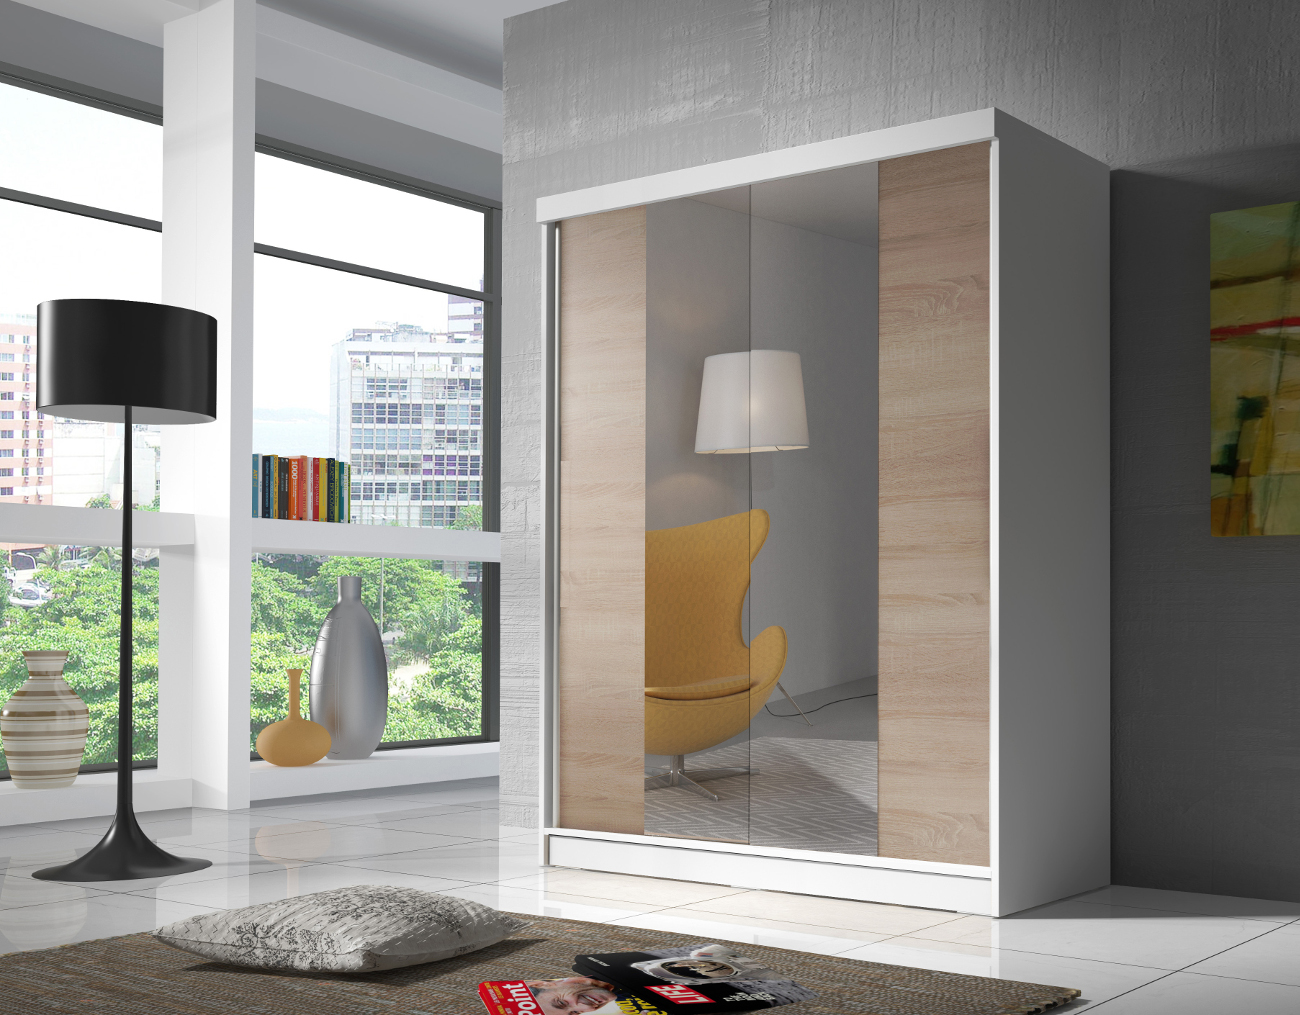 kleiderschrank mit spiegel schwebet renschrank sonoma eiche wei 160 cm eva02 ebay. Black Bedroom Furniture Sets. Home Design Ideas